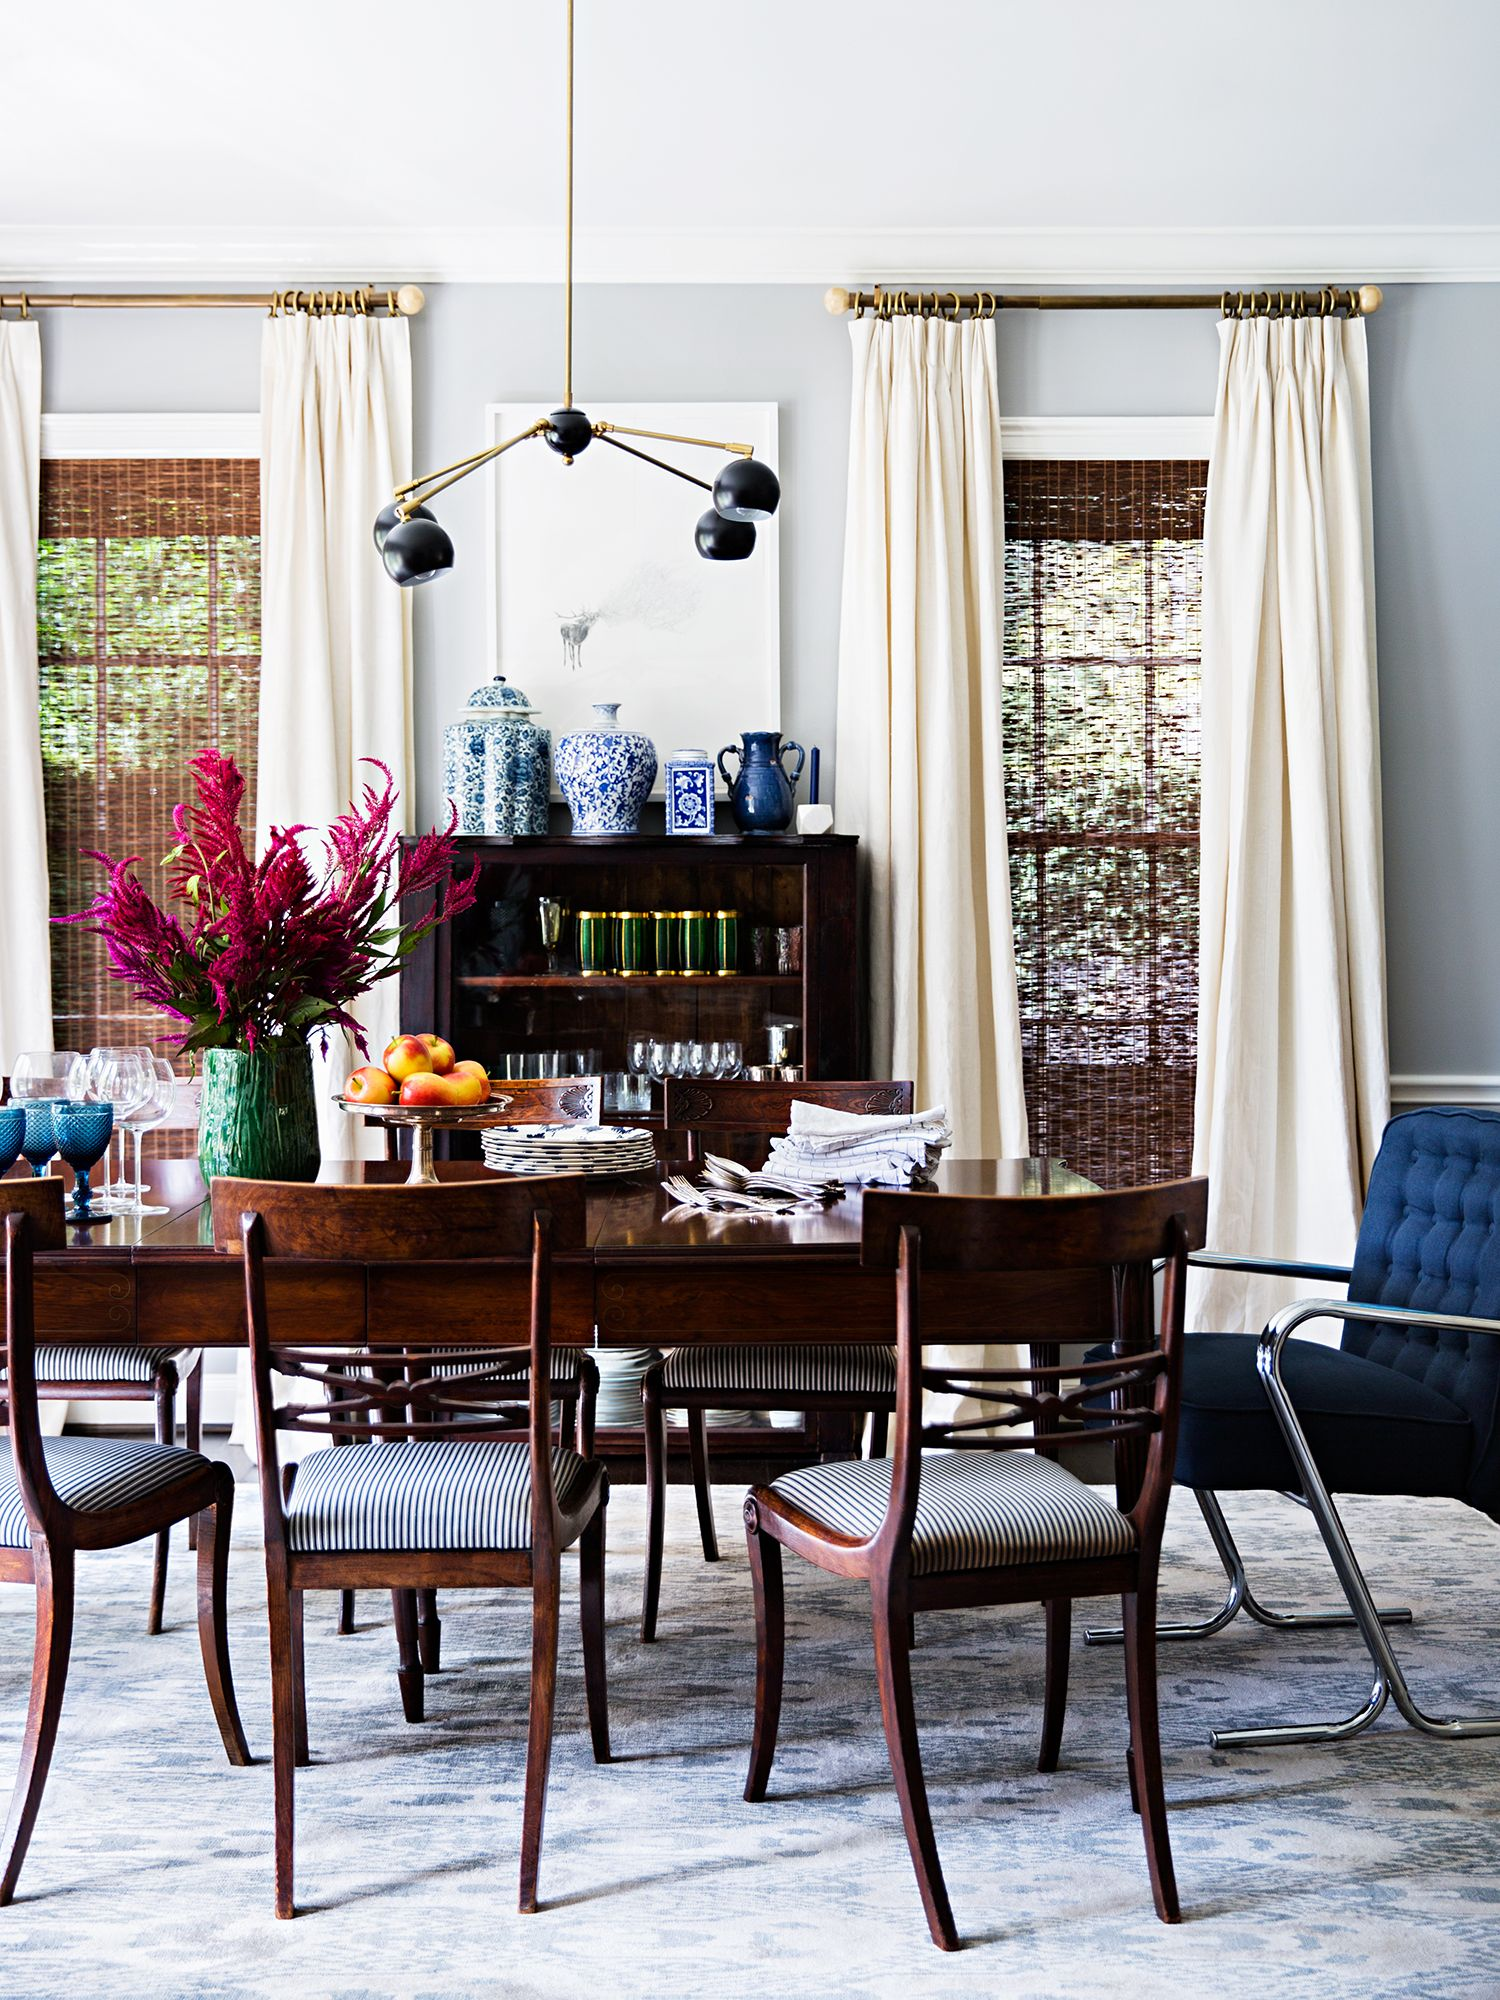 Interior Design By Ashley Putman Beautiful Southern Homes Trending Decor Traditional Decor Southern Decor